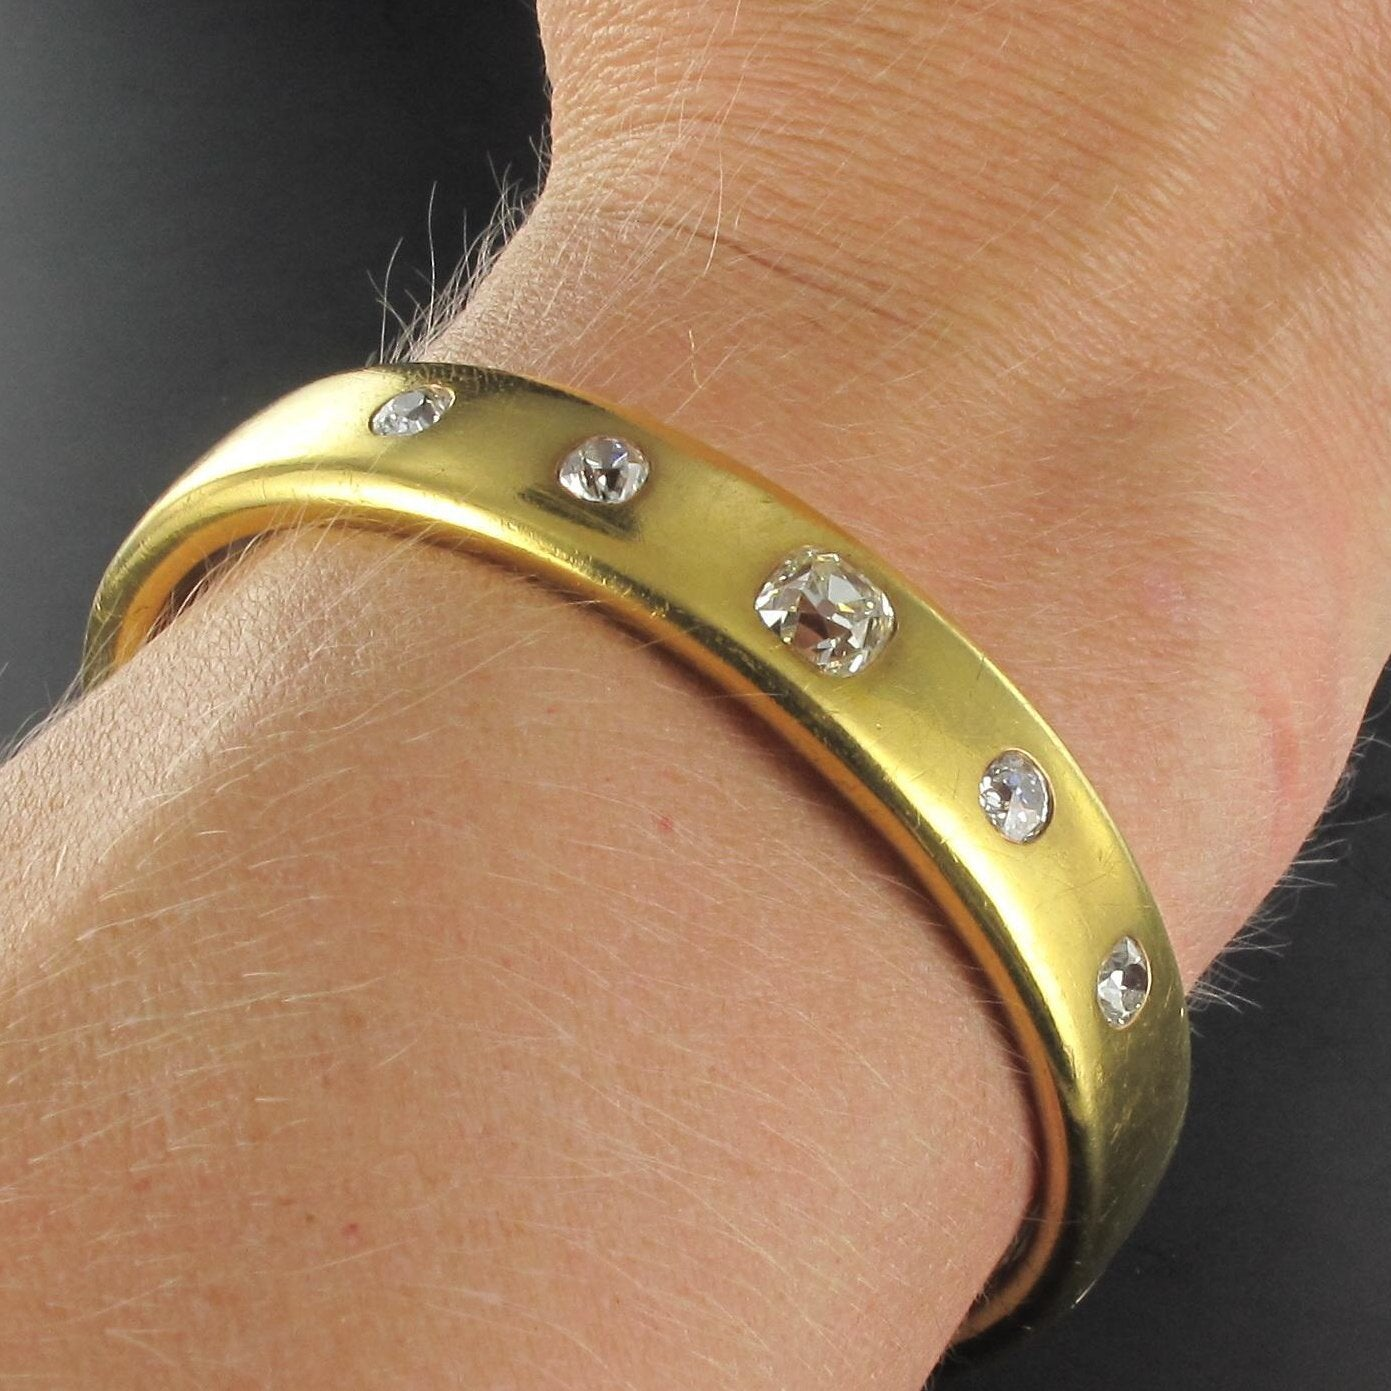 jewellery shop singapore qvc bangles uk type bracelets c gold bracelet n bangle